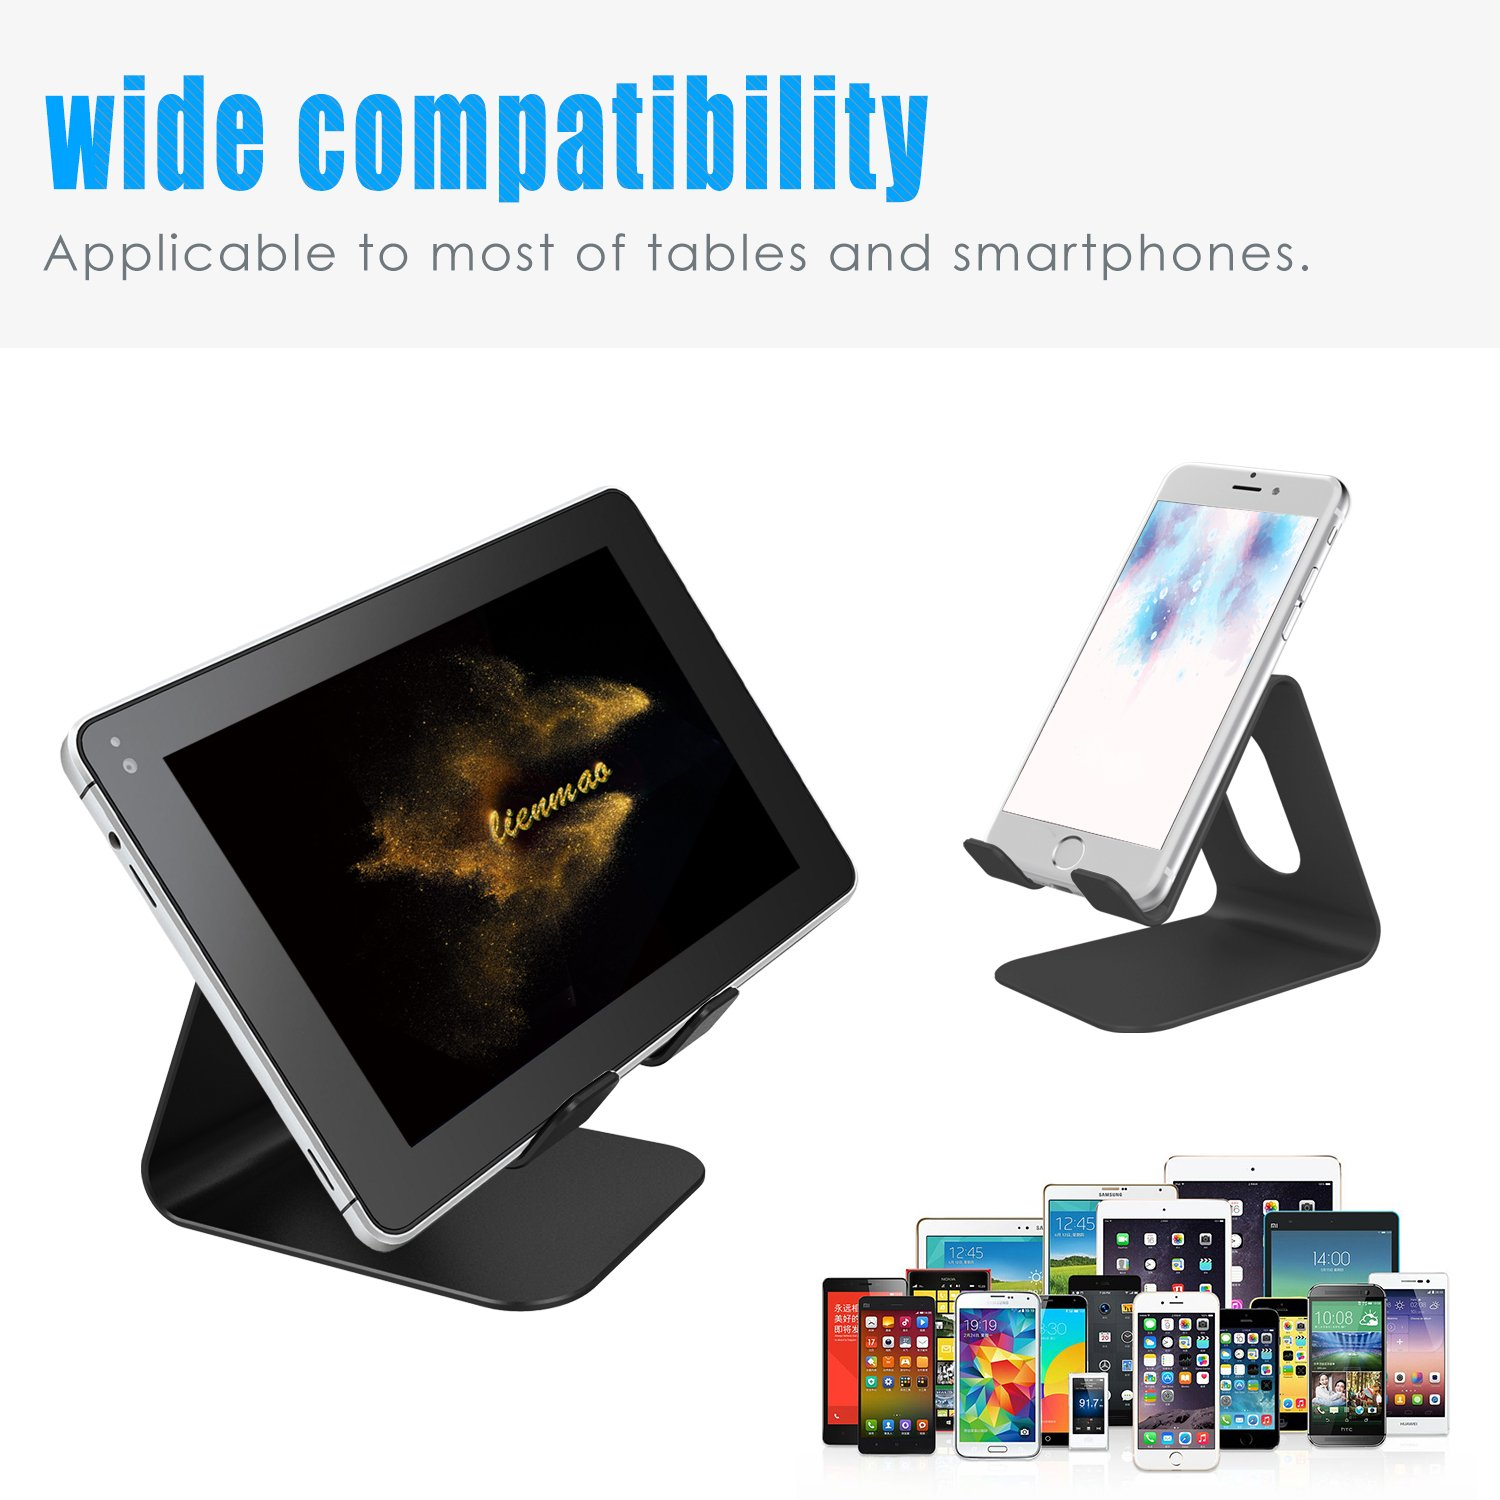 Cell Phone Stand, Lobkin T1 Cradle Dock, Charging Holder,Switch Stand for Android Smartphone and iPhone 7 Plus 6s 5s 5c 4s ,Black